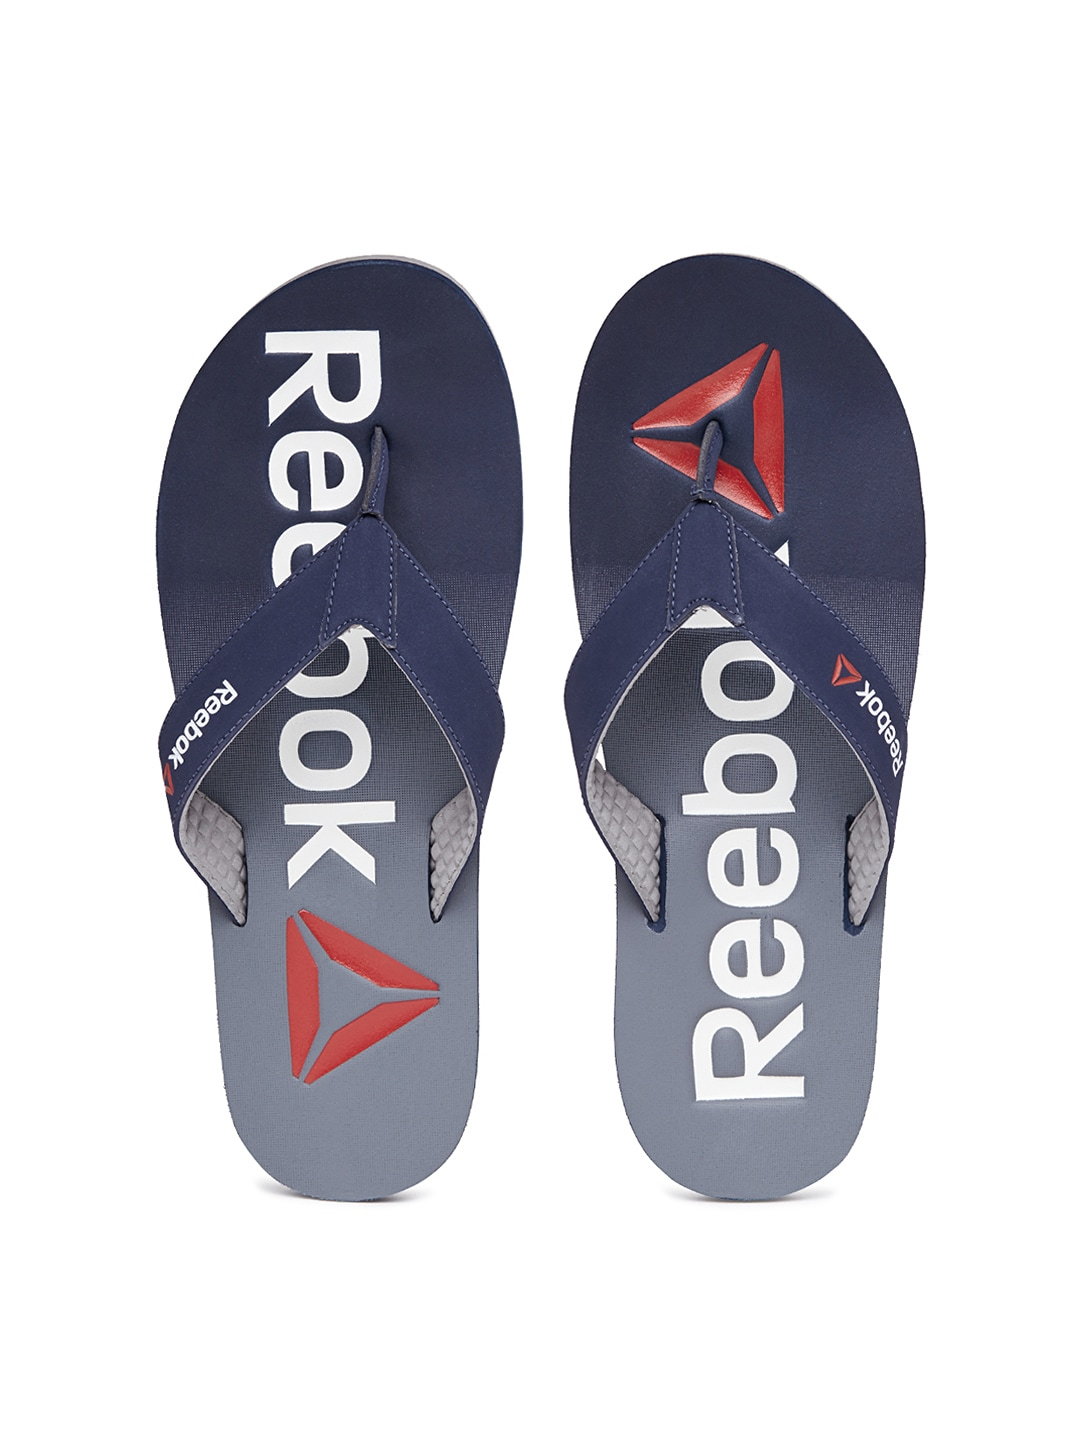 ee9f38fb6 Reebok bd3943 Men Navy And Grey Embossed Printed Flip Flops- Price in India